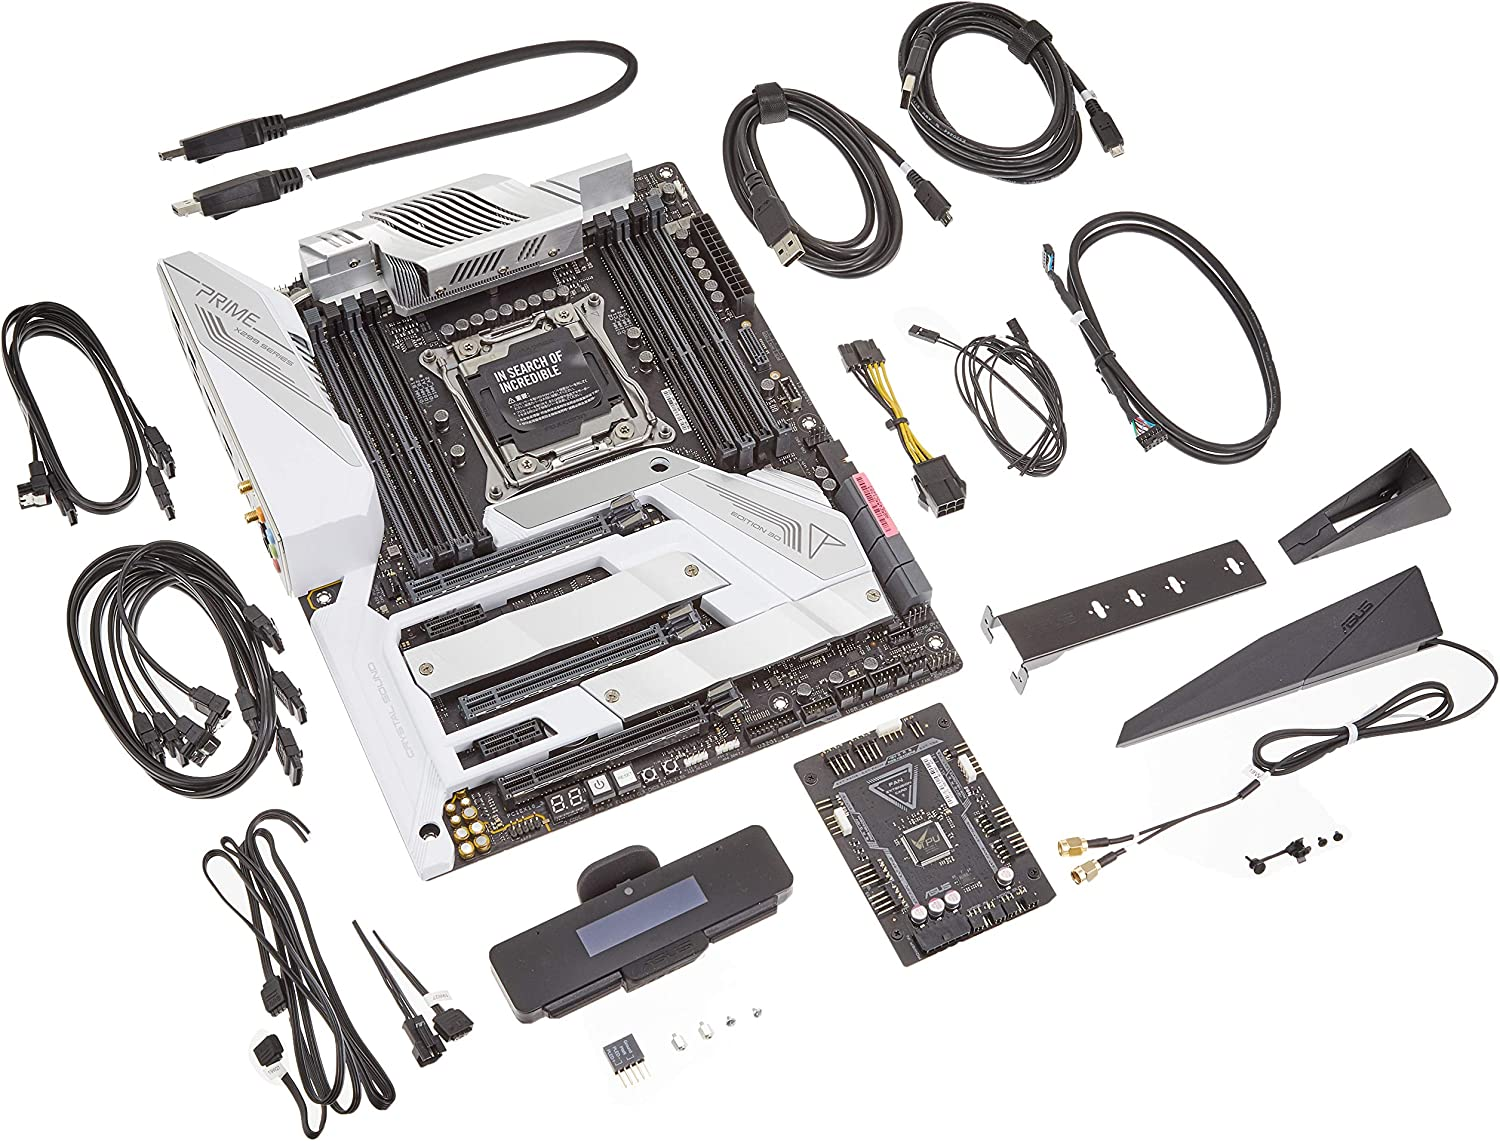 Asus Prime X299 Edition 30 ATX Motherboard (Intel X299) LGA 2066, DDR4 4266 MHz, Wi-Fi 6, 5 Gbps Ethernet, Type-C Thunderbolt 3 Ports, Triple M.2, USB 3.2 Front-Panel Connector & Aura Sync RGB